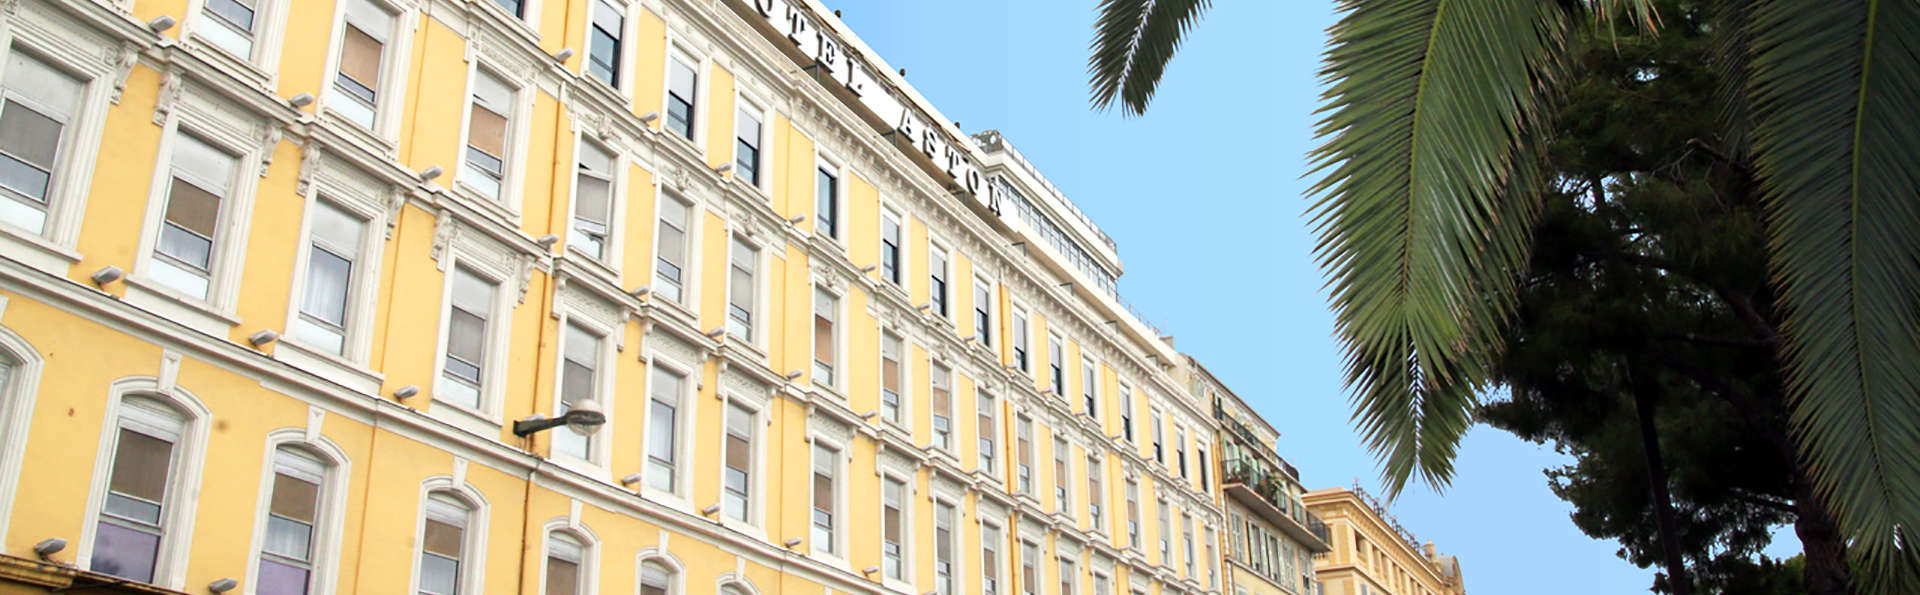 Hôtel Aston La Scala - edit_facade.jpg